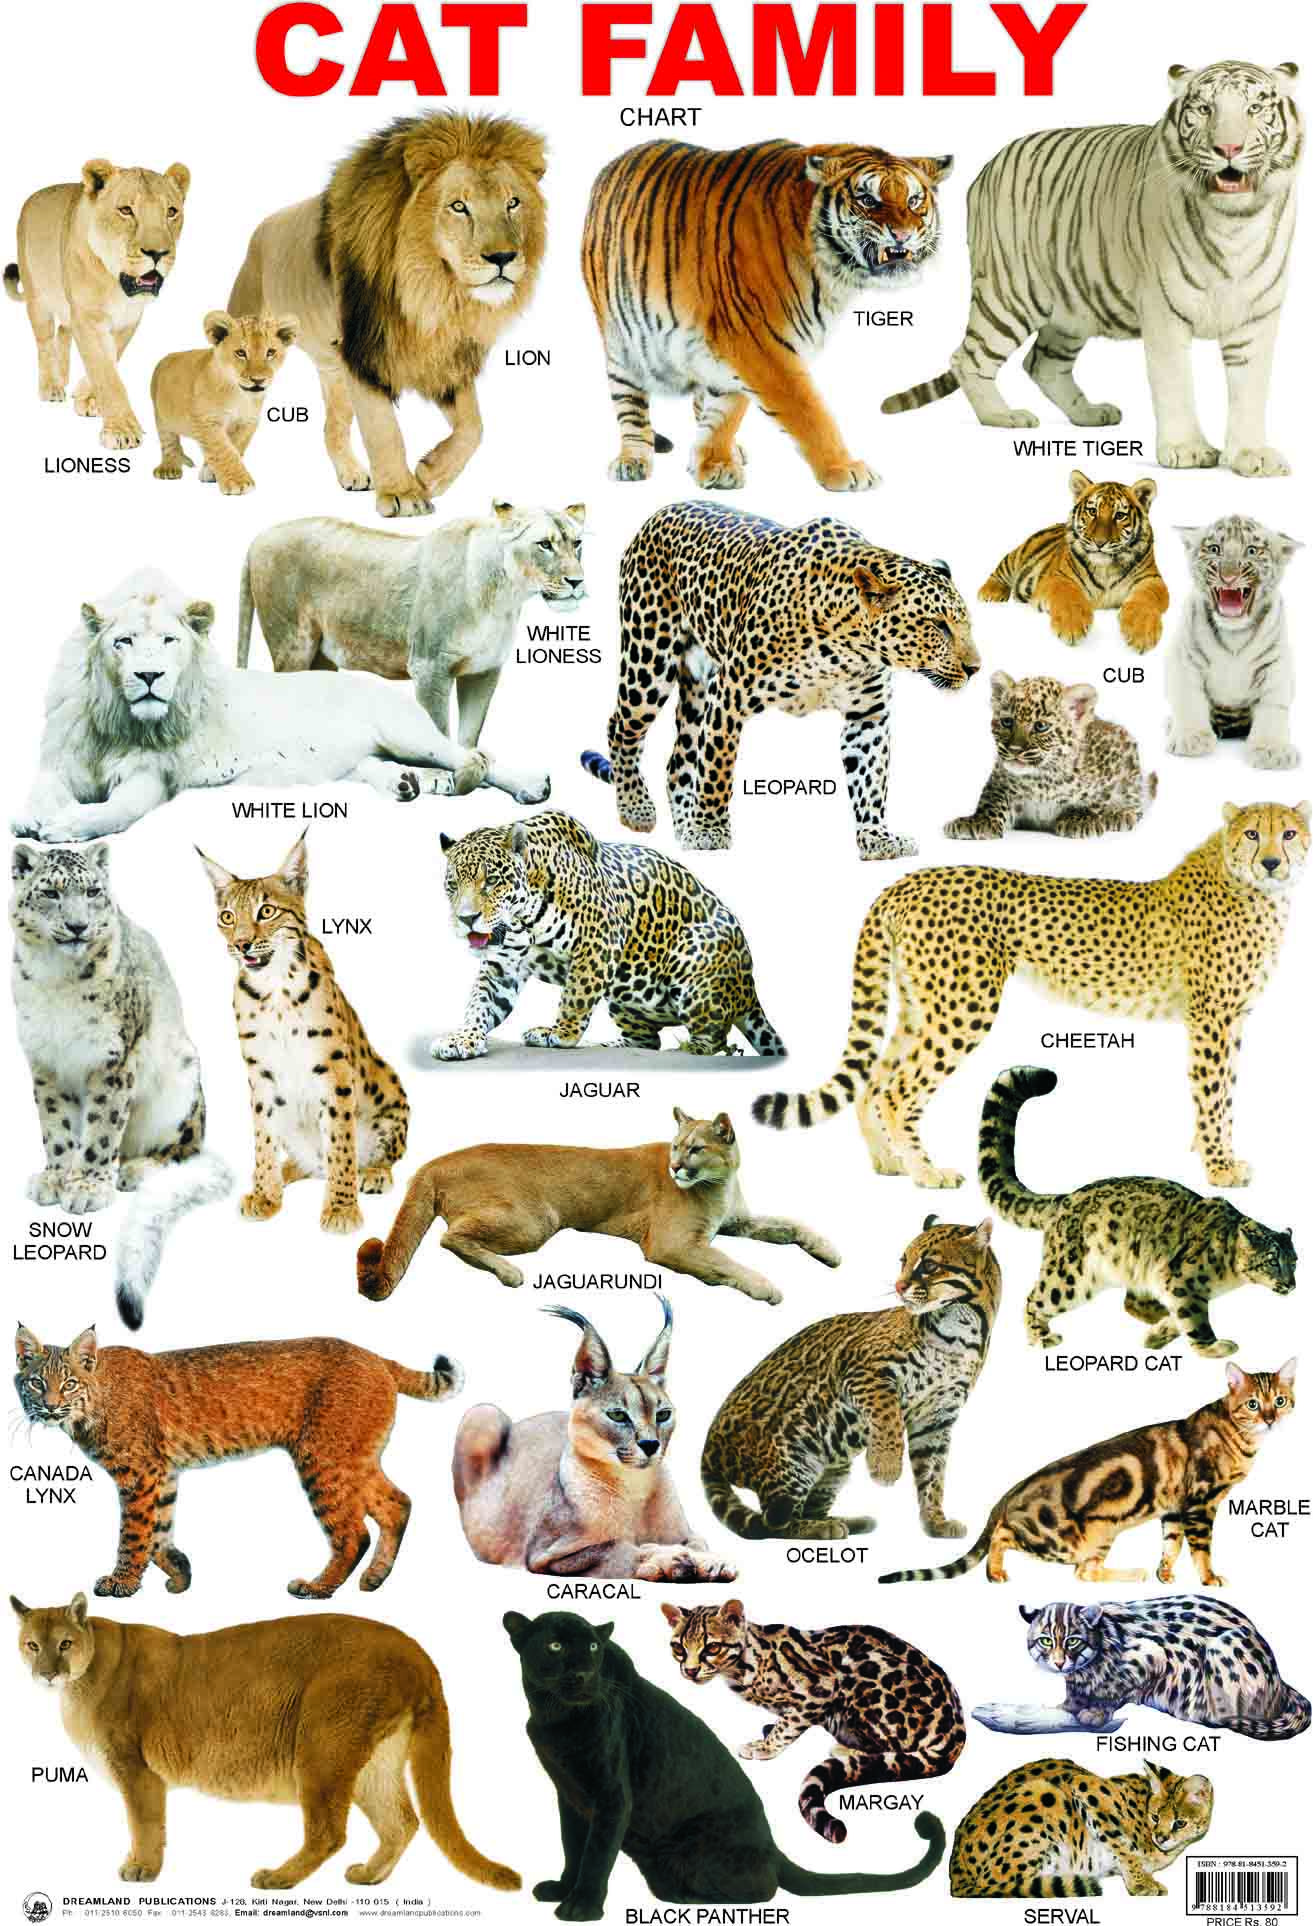 Science Cat Family Stem Pinterest Cats Breeds And Pets Elephant Seal Diagram For